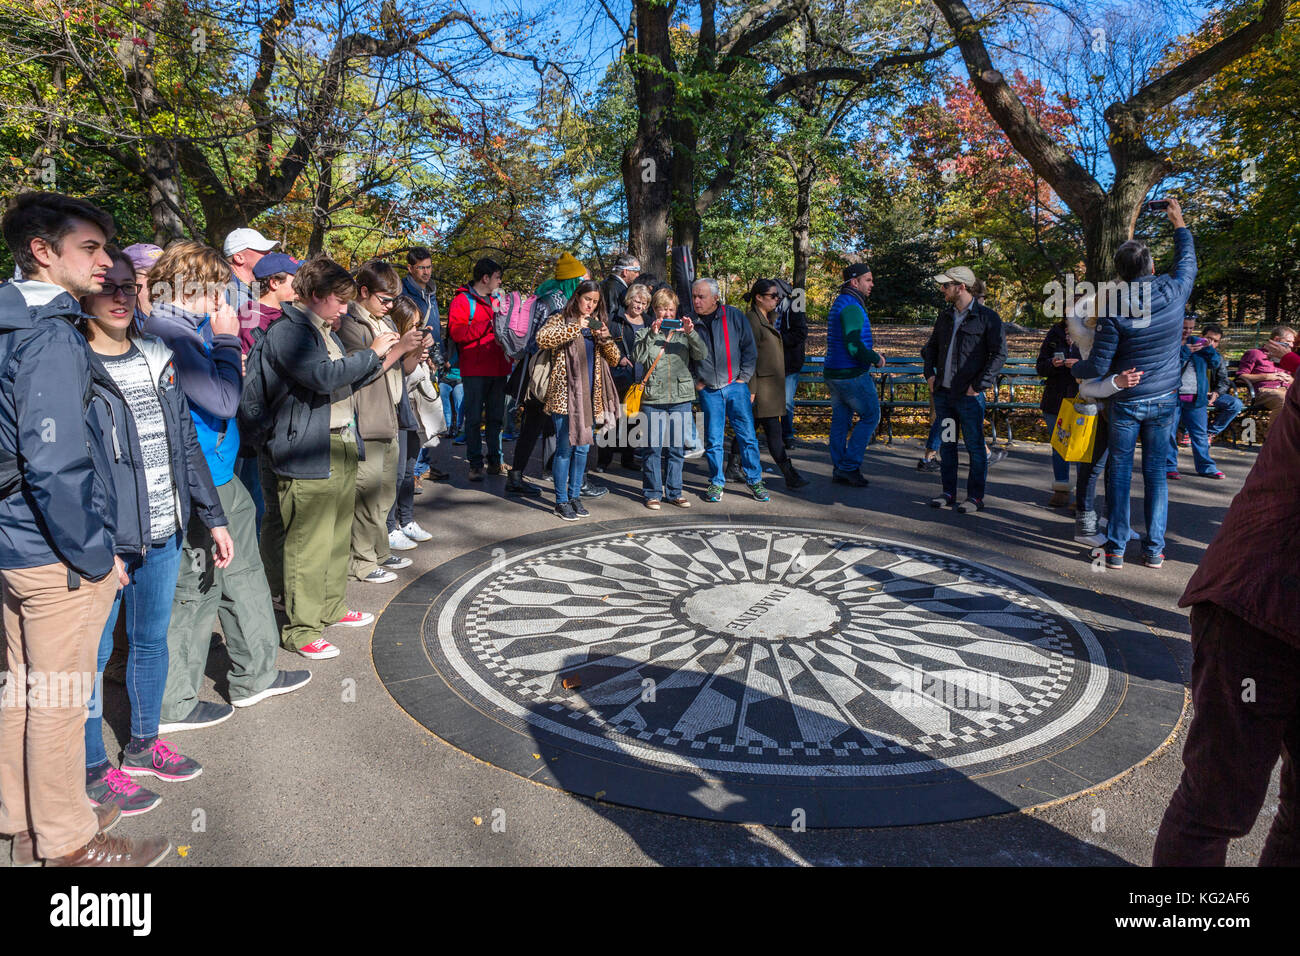 Los turistas que rodean el mosaico de Imagine en el Strawberry Fields memorial de John Lennon, Central Park, New Foto de stock